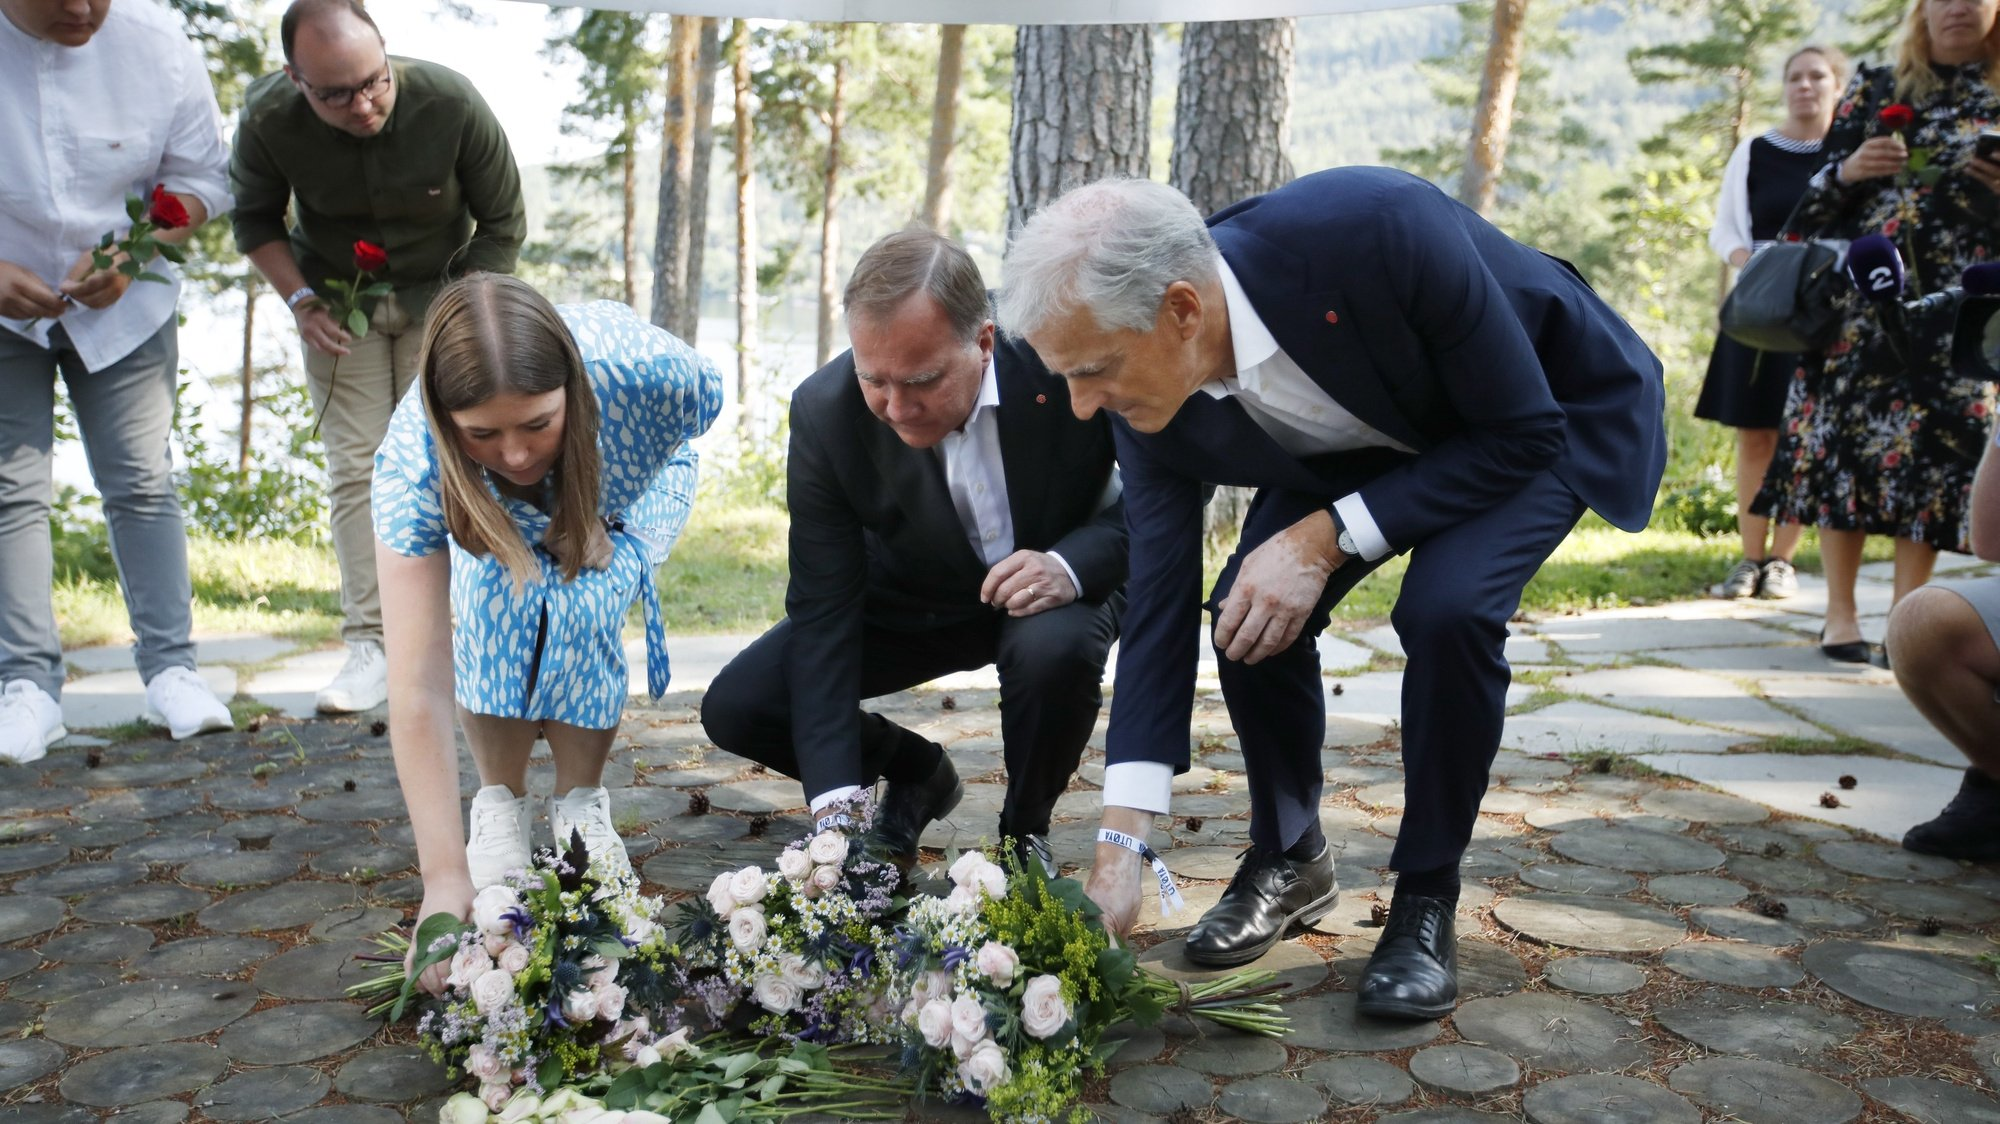 epa09356447 Leader of AUF in Norway, Astrid Hoem, Prime Minister of Sweden Stefan Loefven and leader of the Norwegian Labor Party Jonas Gahr Store lay flowers at the memorial on Utoya the day before the 10th anniversary of the terrorist attack on 22 July 2011. Norway marks 10 years since 22 July 2011, when 77 people were killed by an act of terrorism, eight in the governmental quarters in Oslo, and 69 at the Social Democratic Youth party's summer camp on the island of Utoya.  EPA/BEATE OMA DAHLE  NORWAY OUT